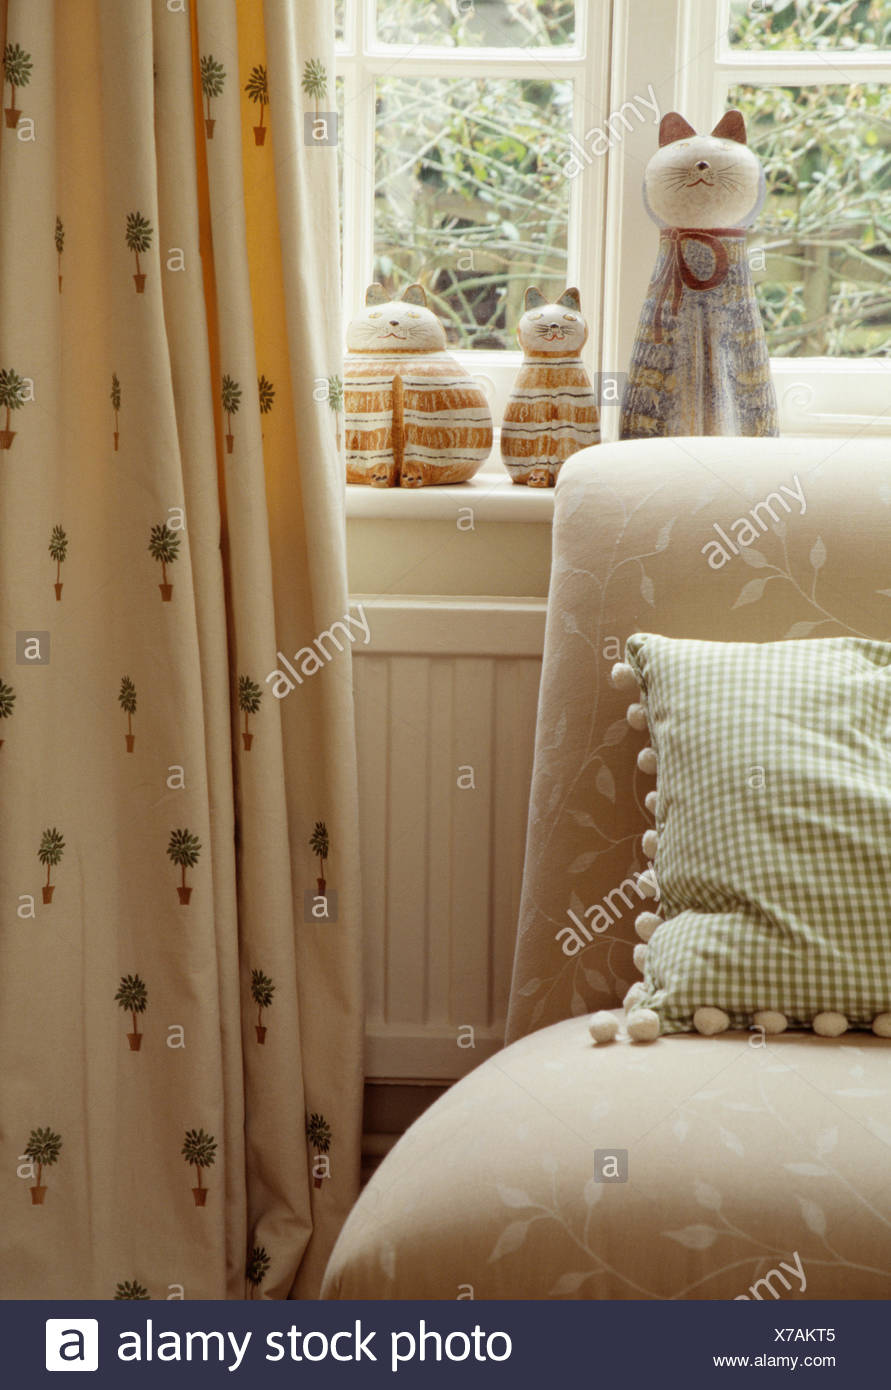 Exceptional Close Up Of Bobble Edged Cushion On Beige Sofa In Front Of Window With  Cream Topiary Patterned Curtains